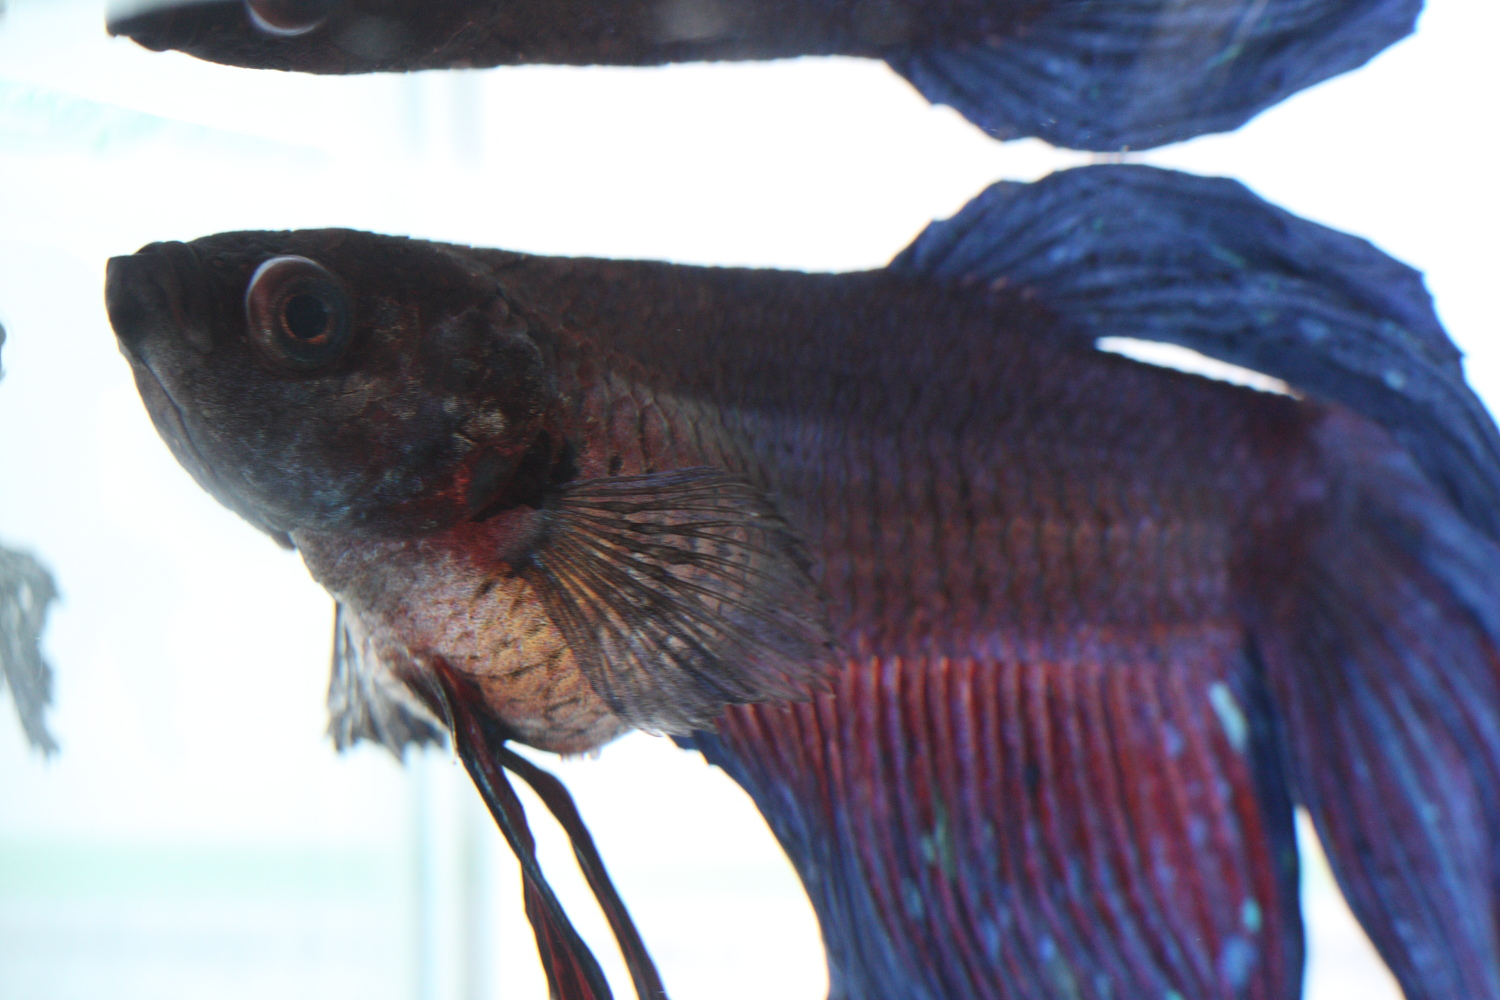 Pin dropsy in fish on pinterest for Bloated betta fish